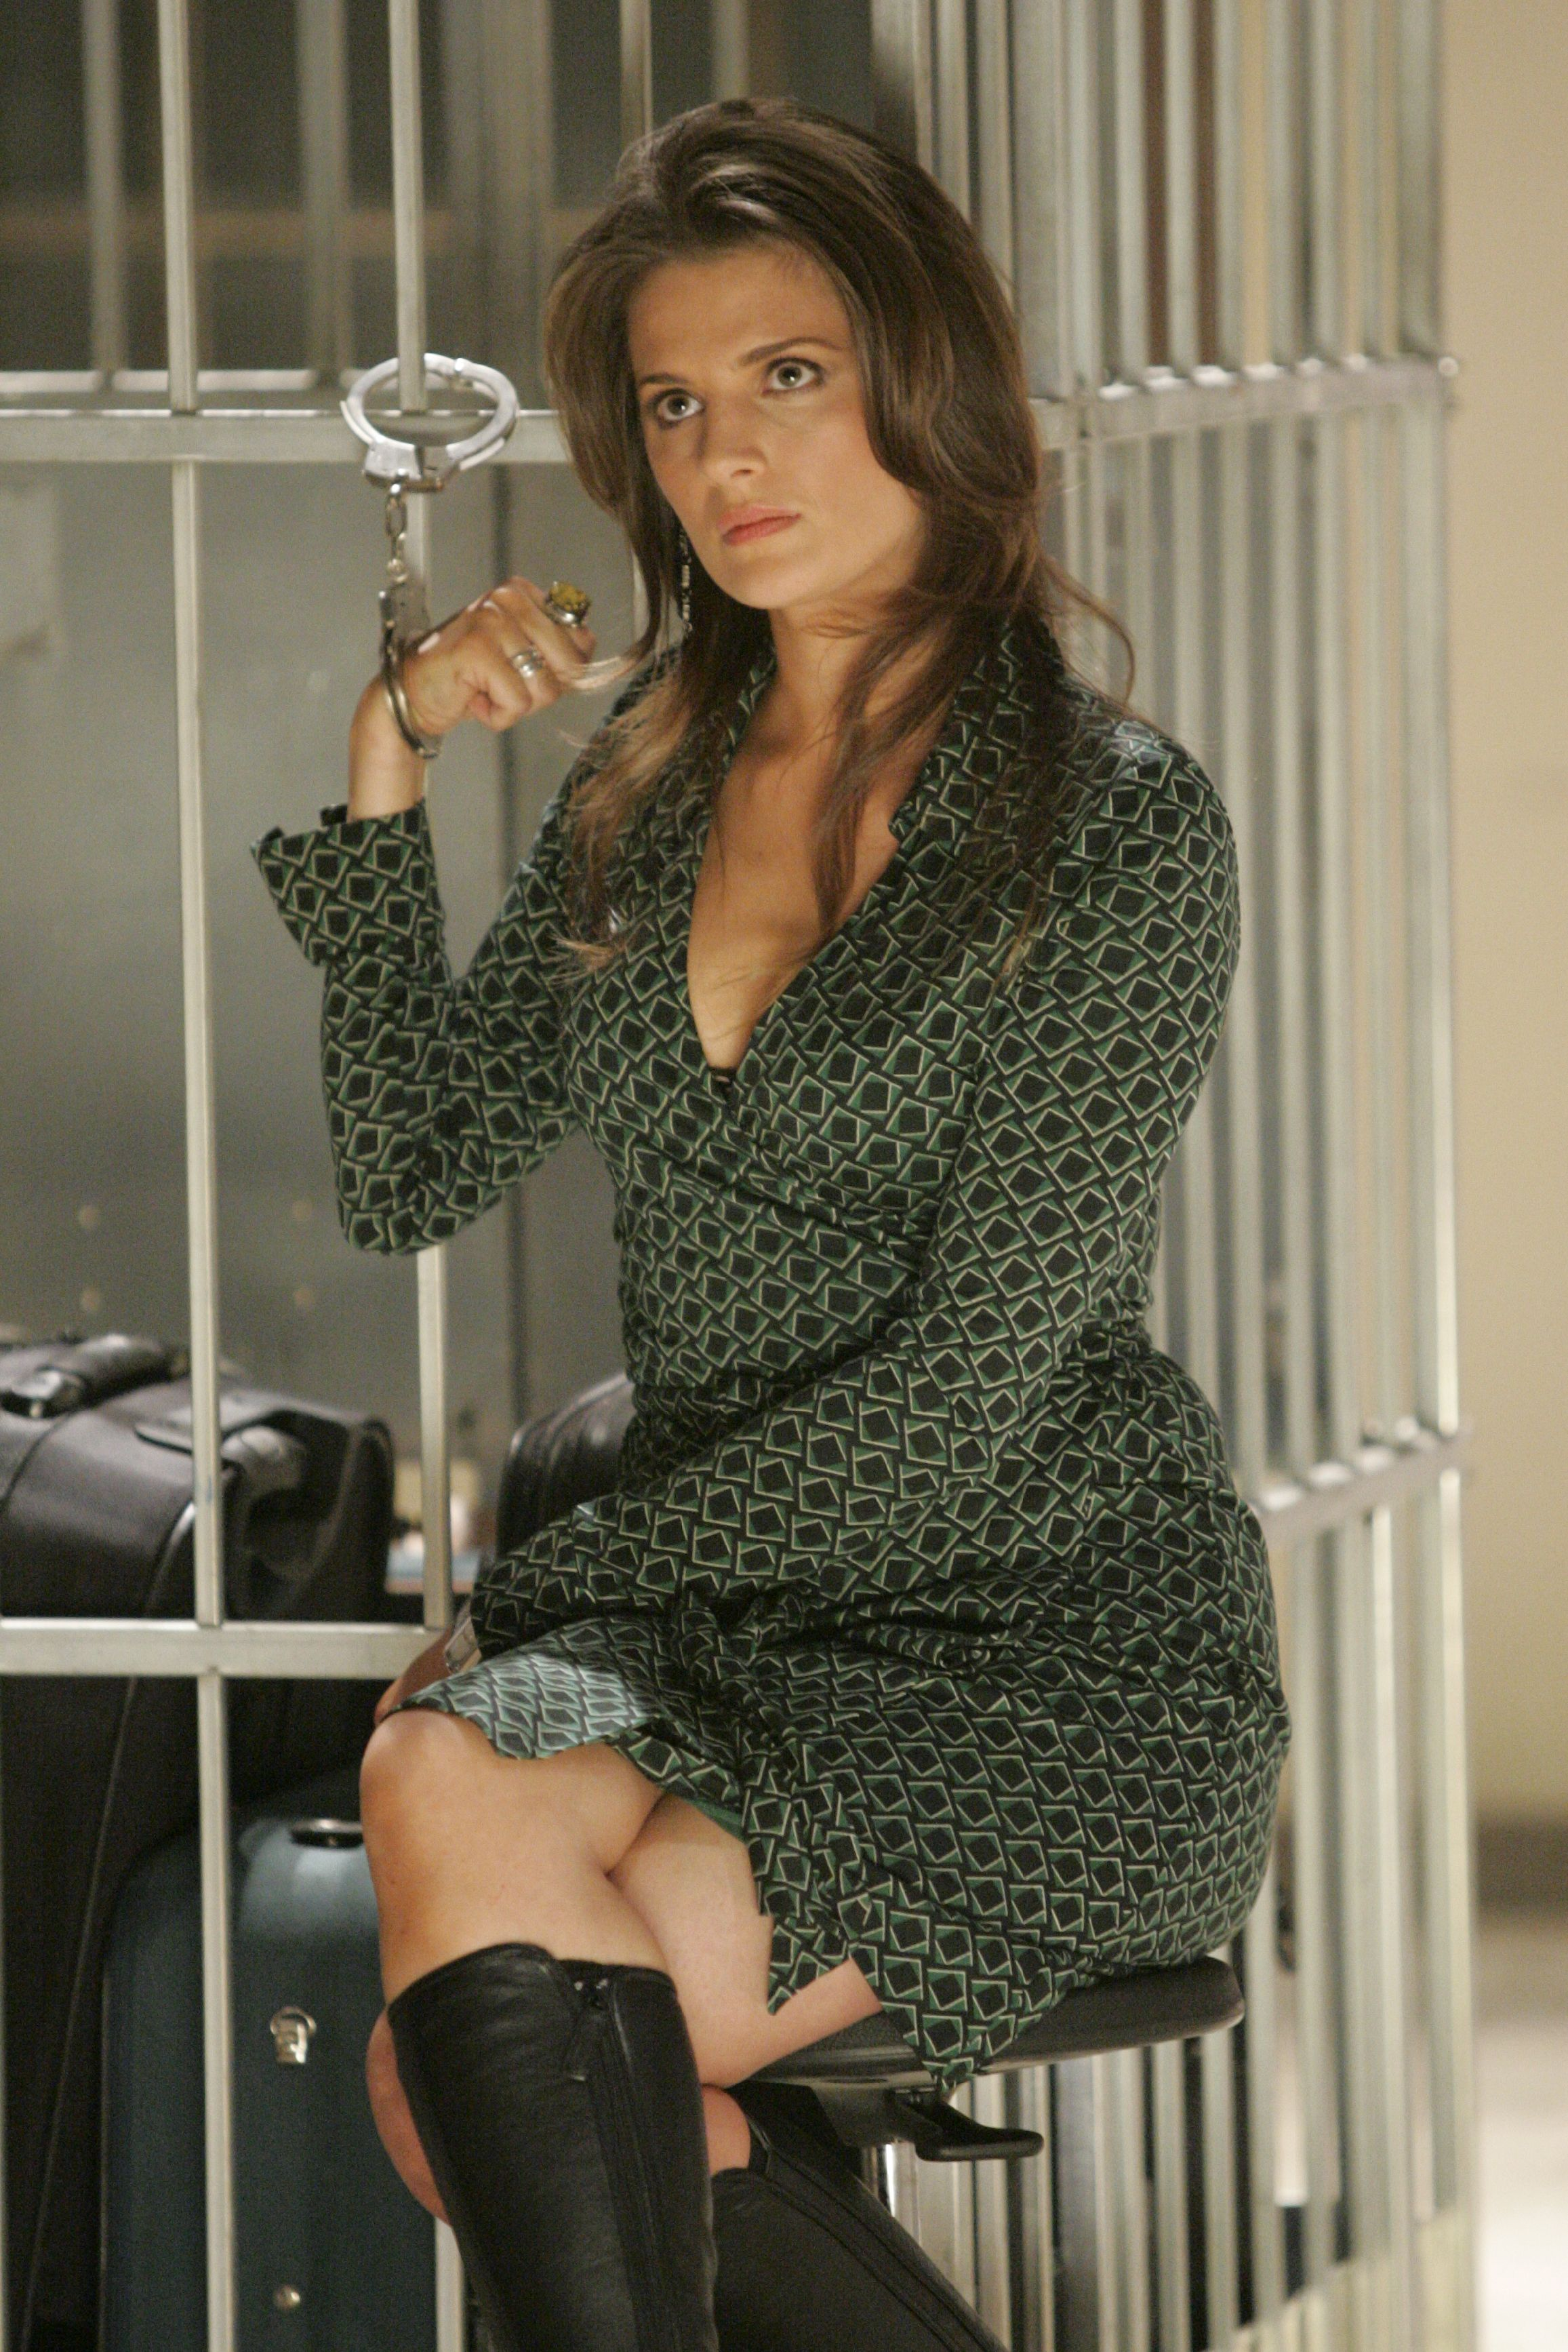 Stana Katic as Collette Stenger handcuffed in 24 Season 5 Episode 14 ...